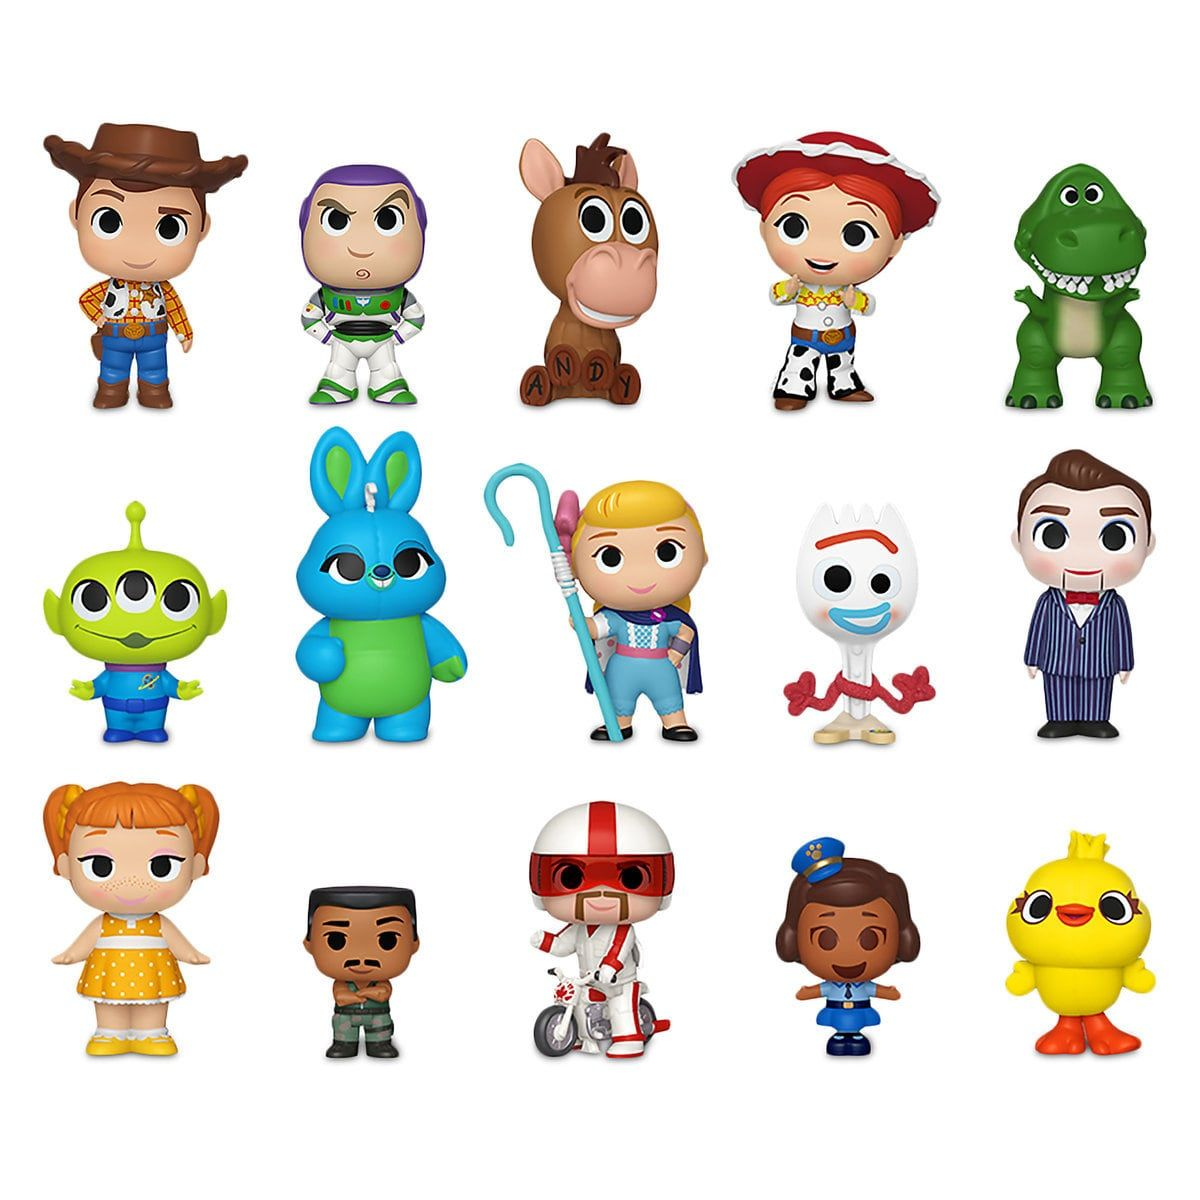 Toy Story 4 Mystery Minis Vinyl Figure By Funko Toy Story Figures Disney Toys Toy Story Birthday